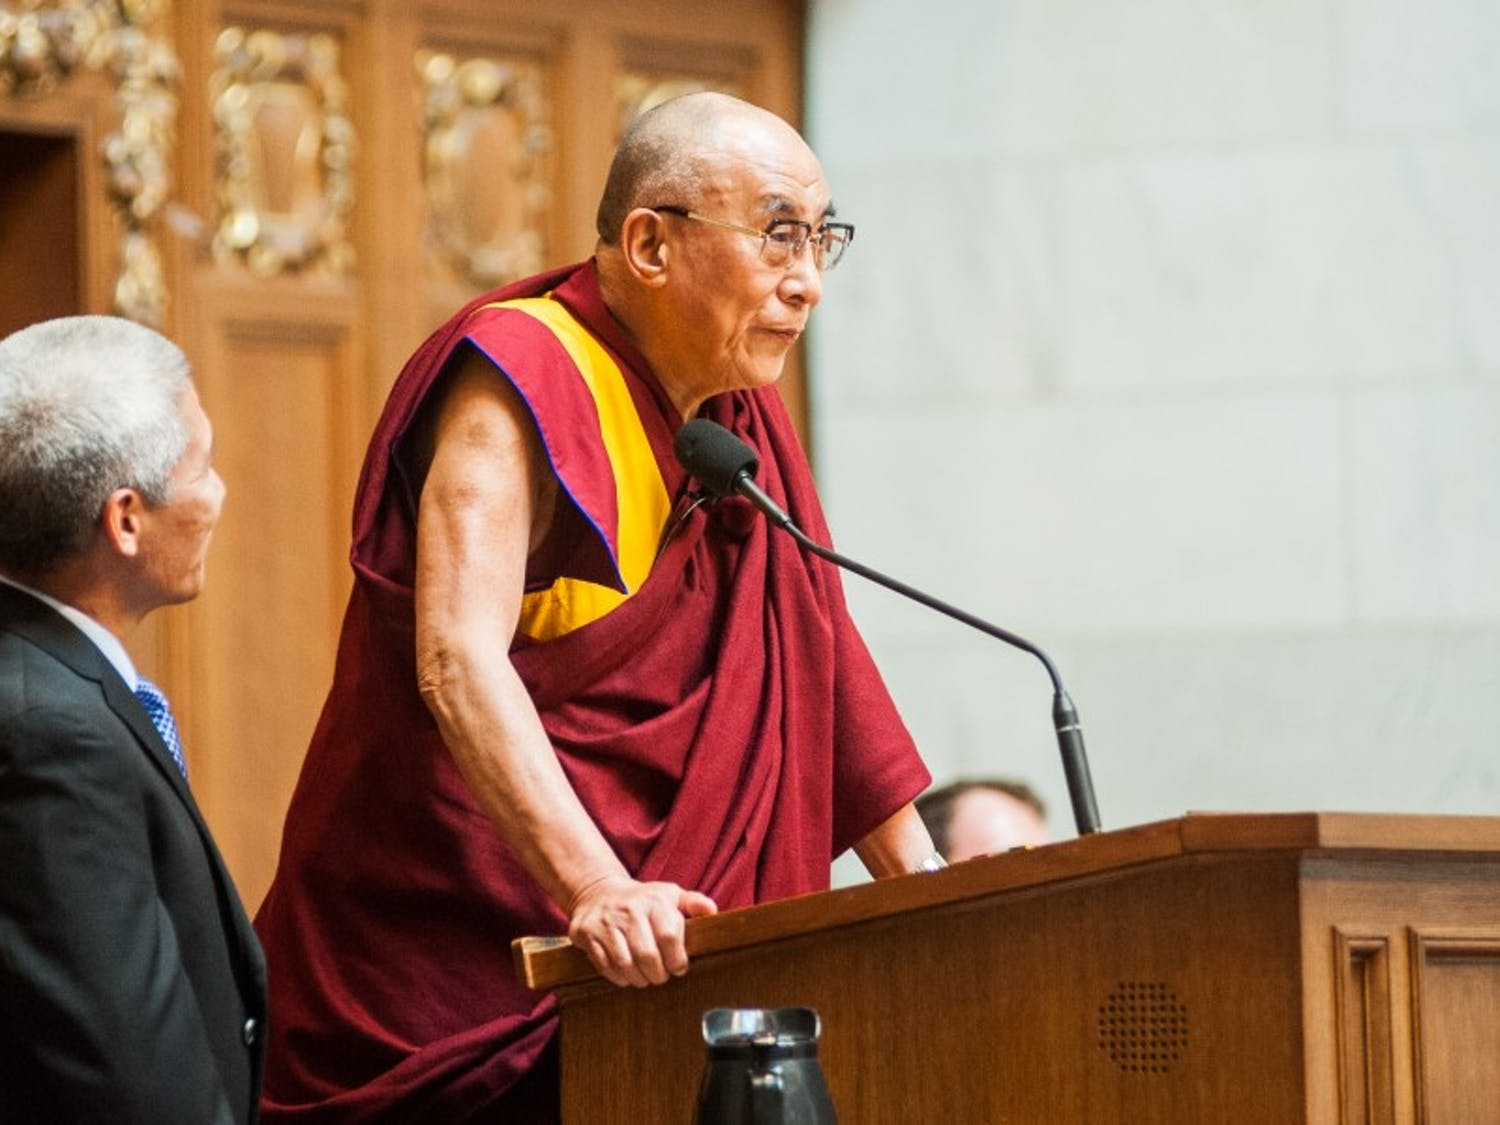 The Dalai Lama has been criticized by the Chinese government and Chinese students in the United States.